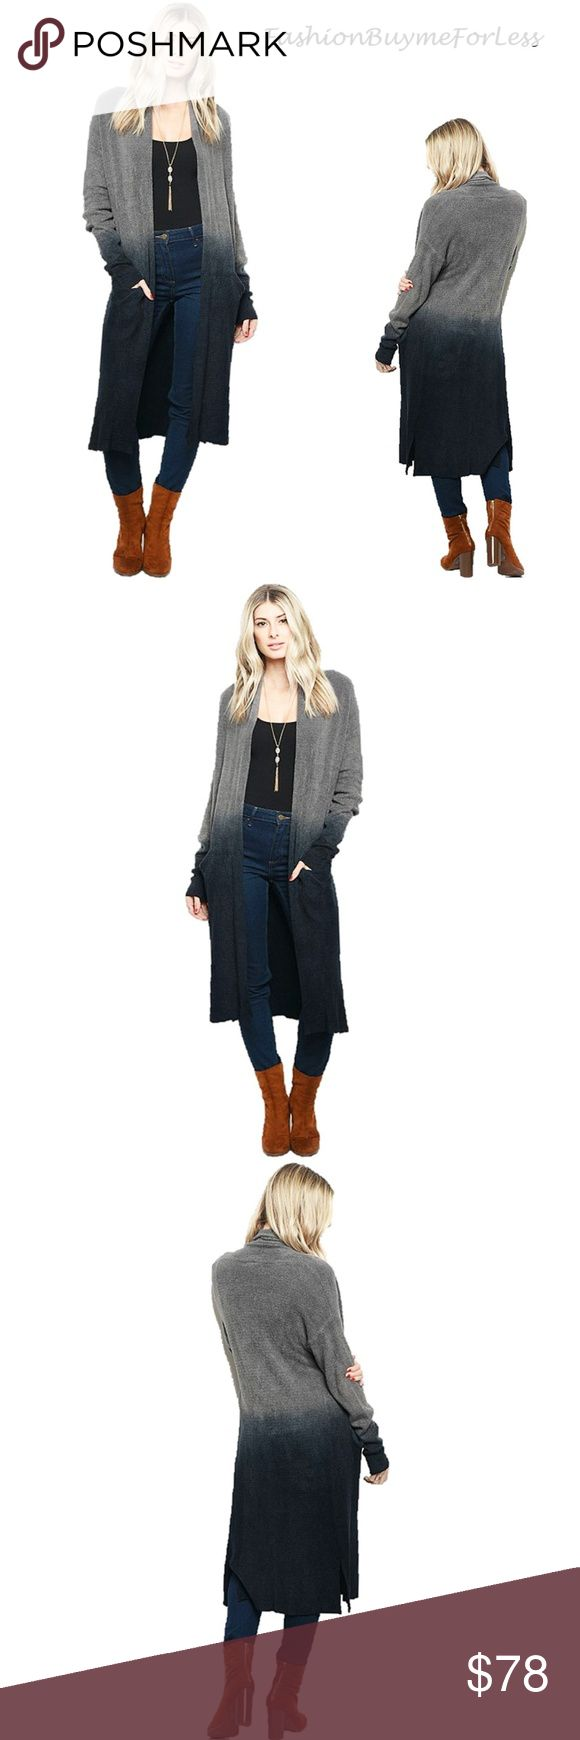 BOHO Gray Maxi Duster Oversized Sweater Cardigan We accept Reasonable Offer  Color: Charcoal Gray / Navy Tie Dye Blend Feature: Oversized Material: Spandex Cotton Blend  We love the Modern Oversized Sweater Cardigan, Gypsy Flowy, Stylish 2 Tone Tie Dye Blend color, Pockets, Open Front, Drop Shoulder, Long Sleeve,  BOHO Oversized, Ribbed Hem, Highly stretchy, soft & Comfy. Modern Sophisticated Urban Fashion. P.ID: 144100389900745000192200780033  Bust:   Stretchy,  Open Front  Length from…